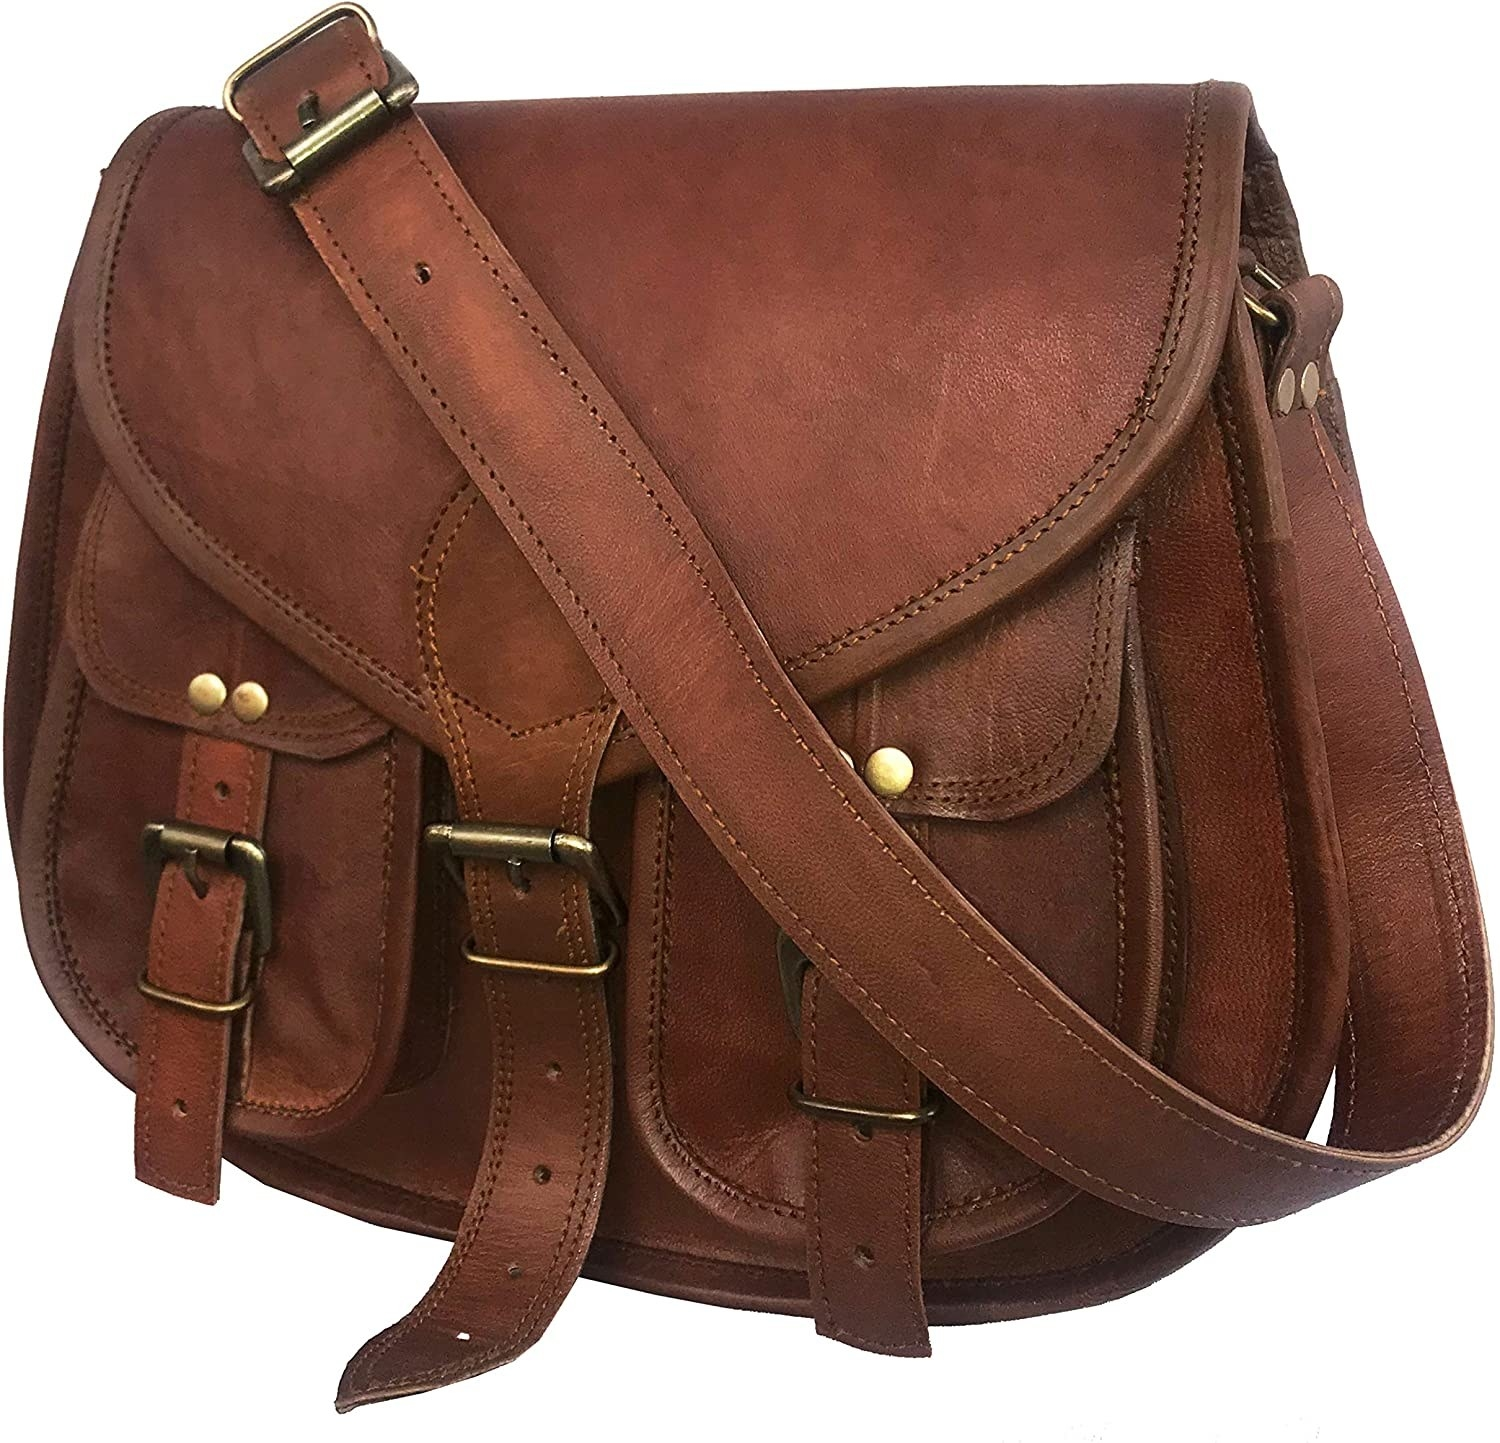 the saddle bag which has two front pockets and three buckle closures